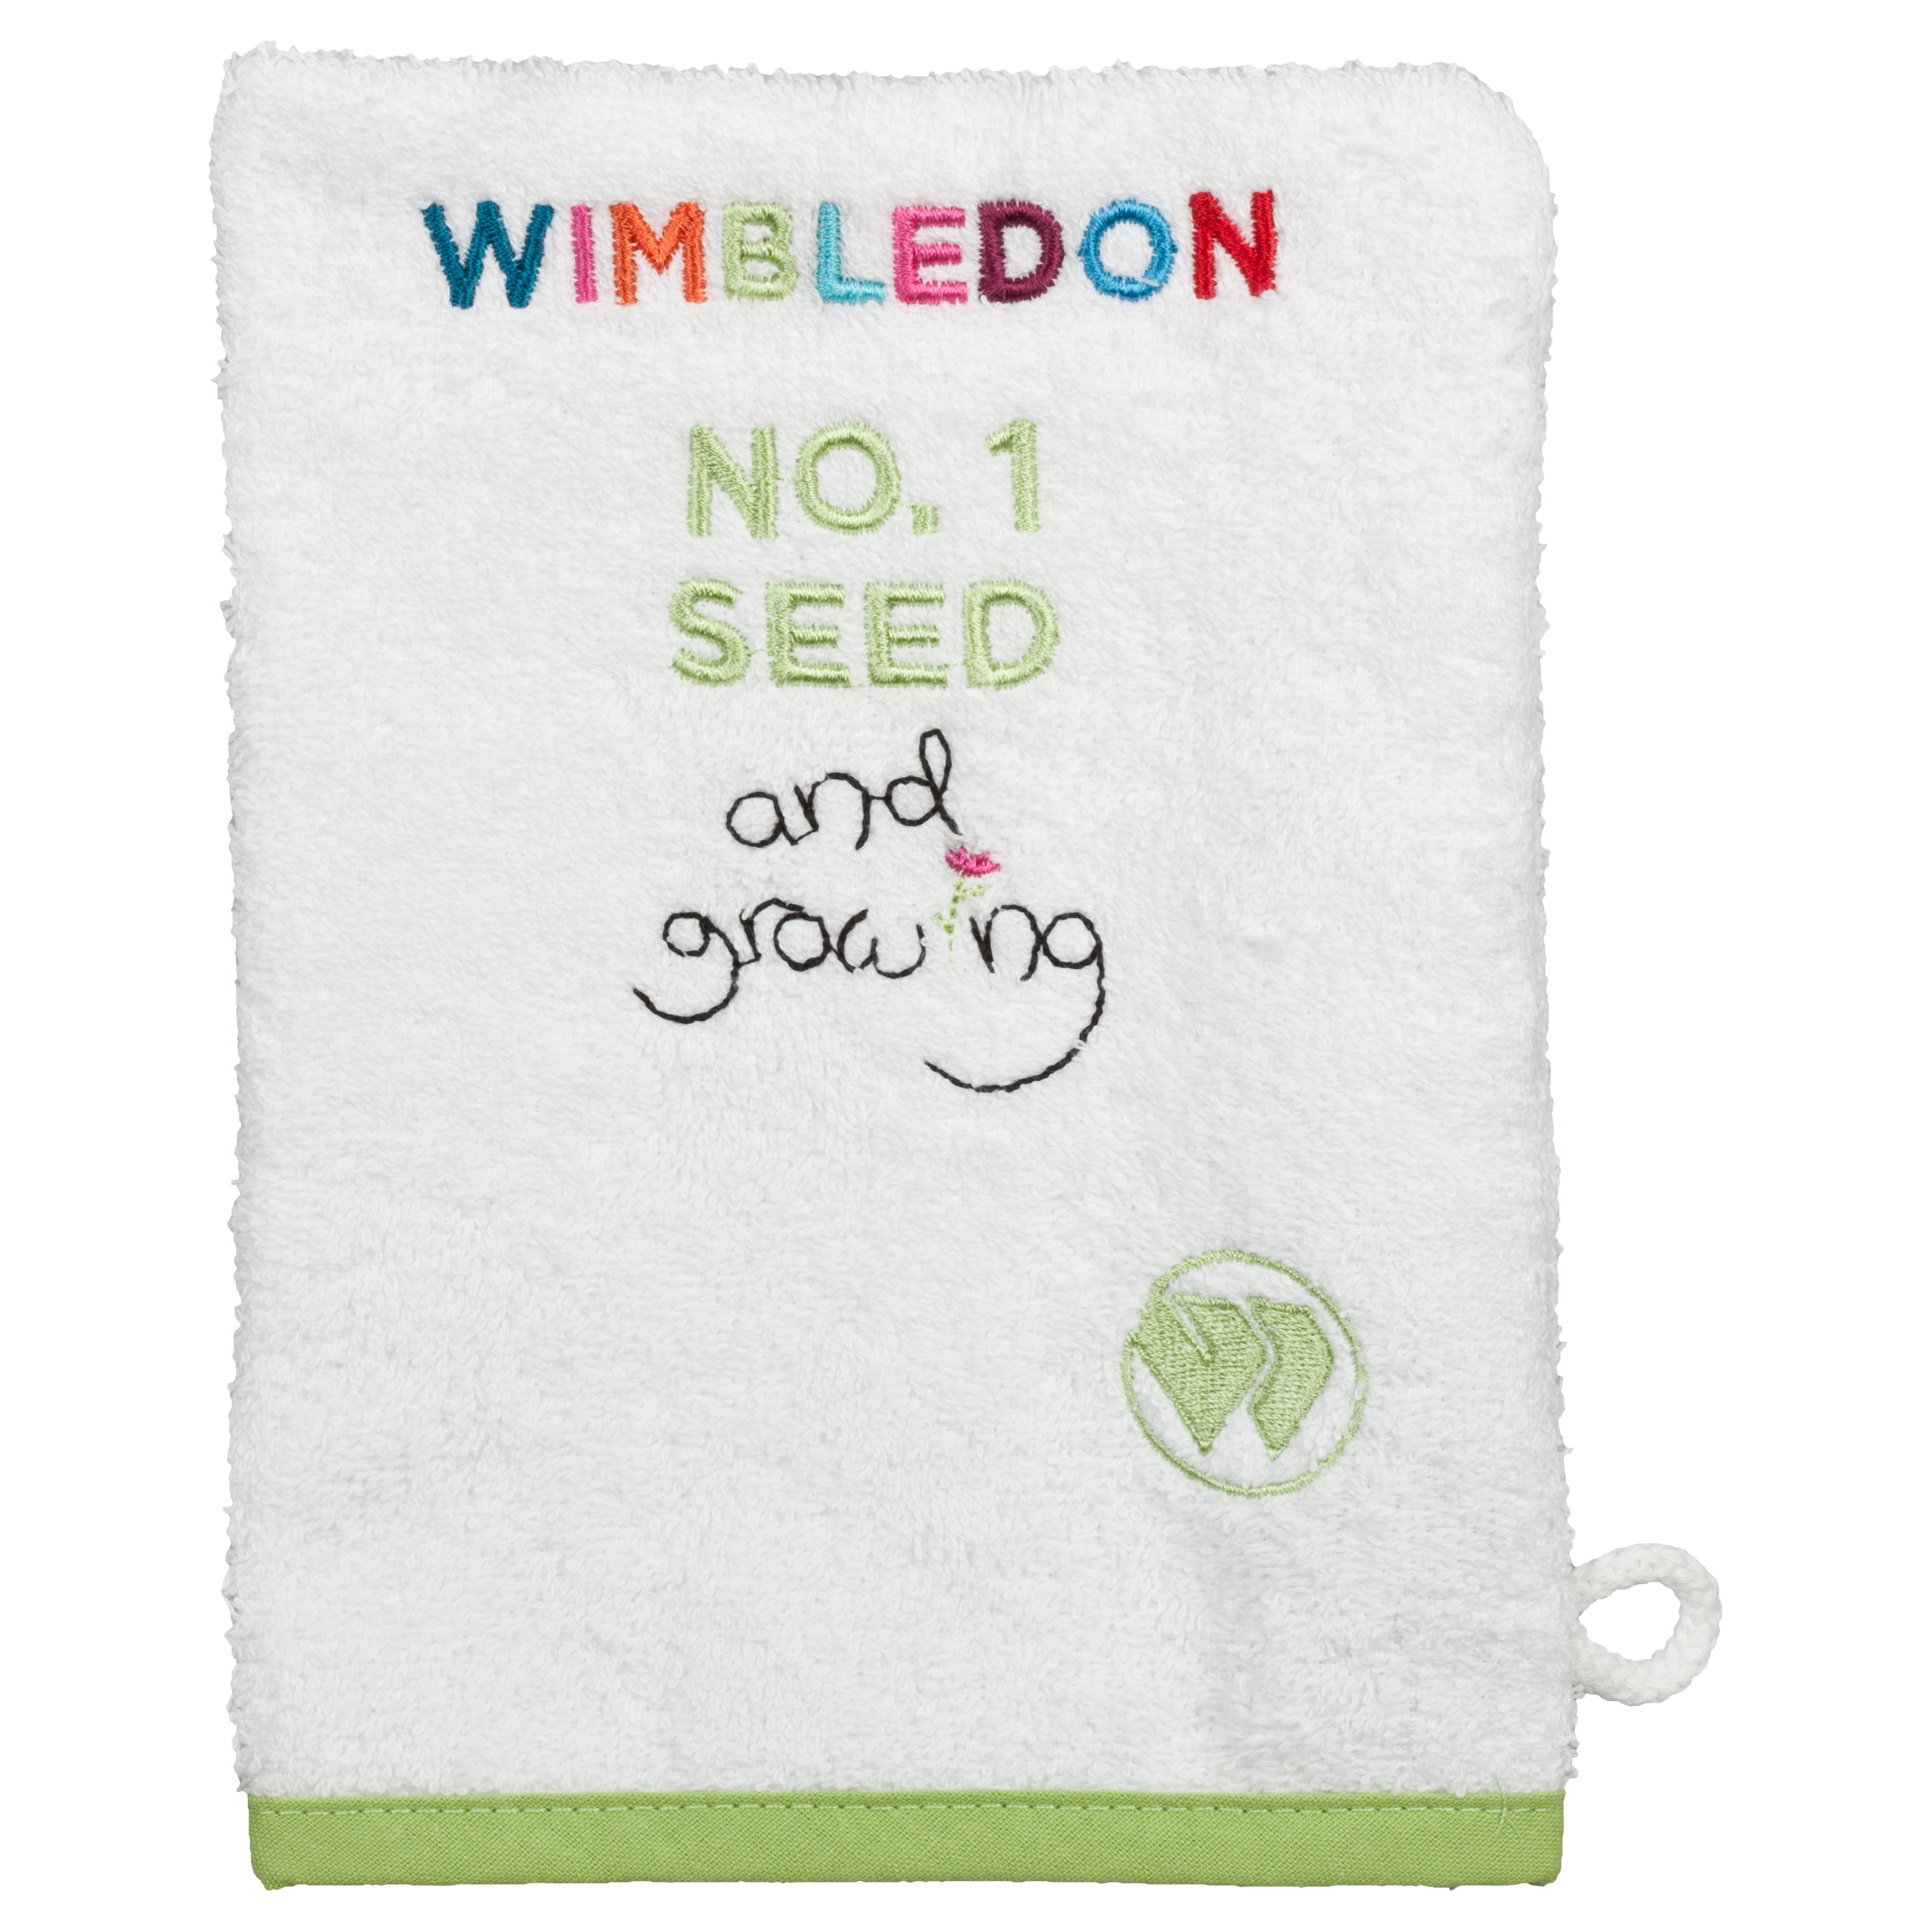 Wimbledon Kids Wash Mitt White